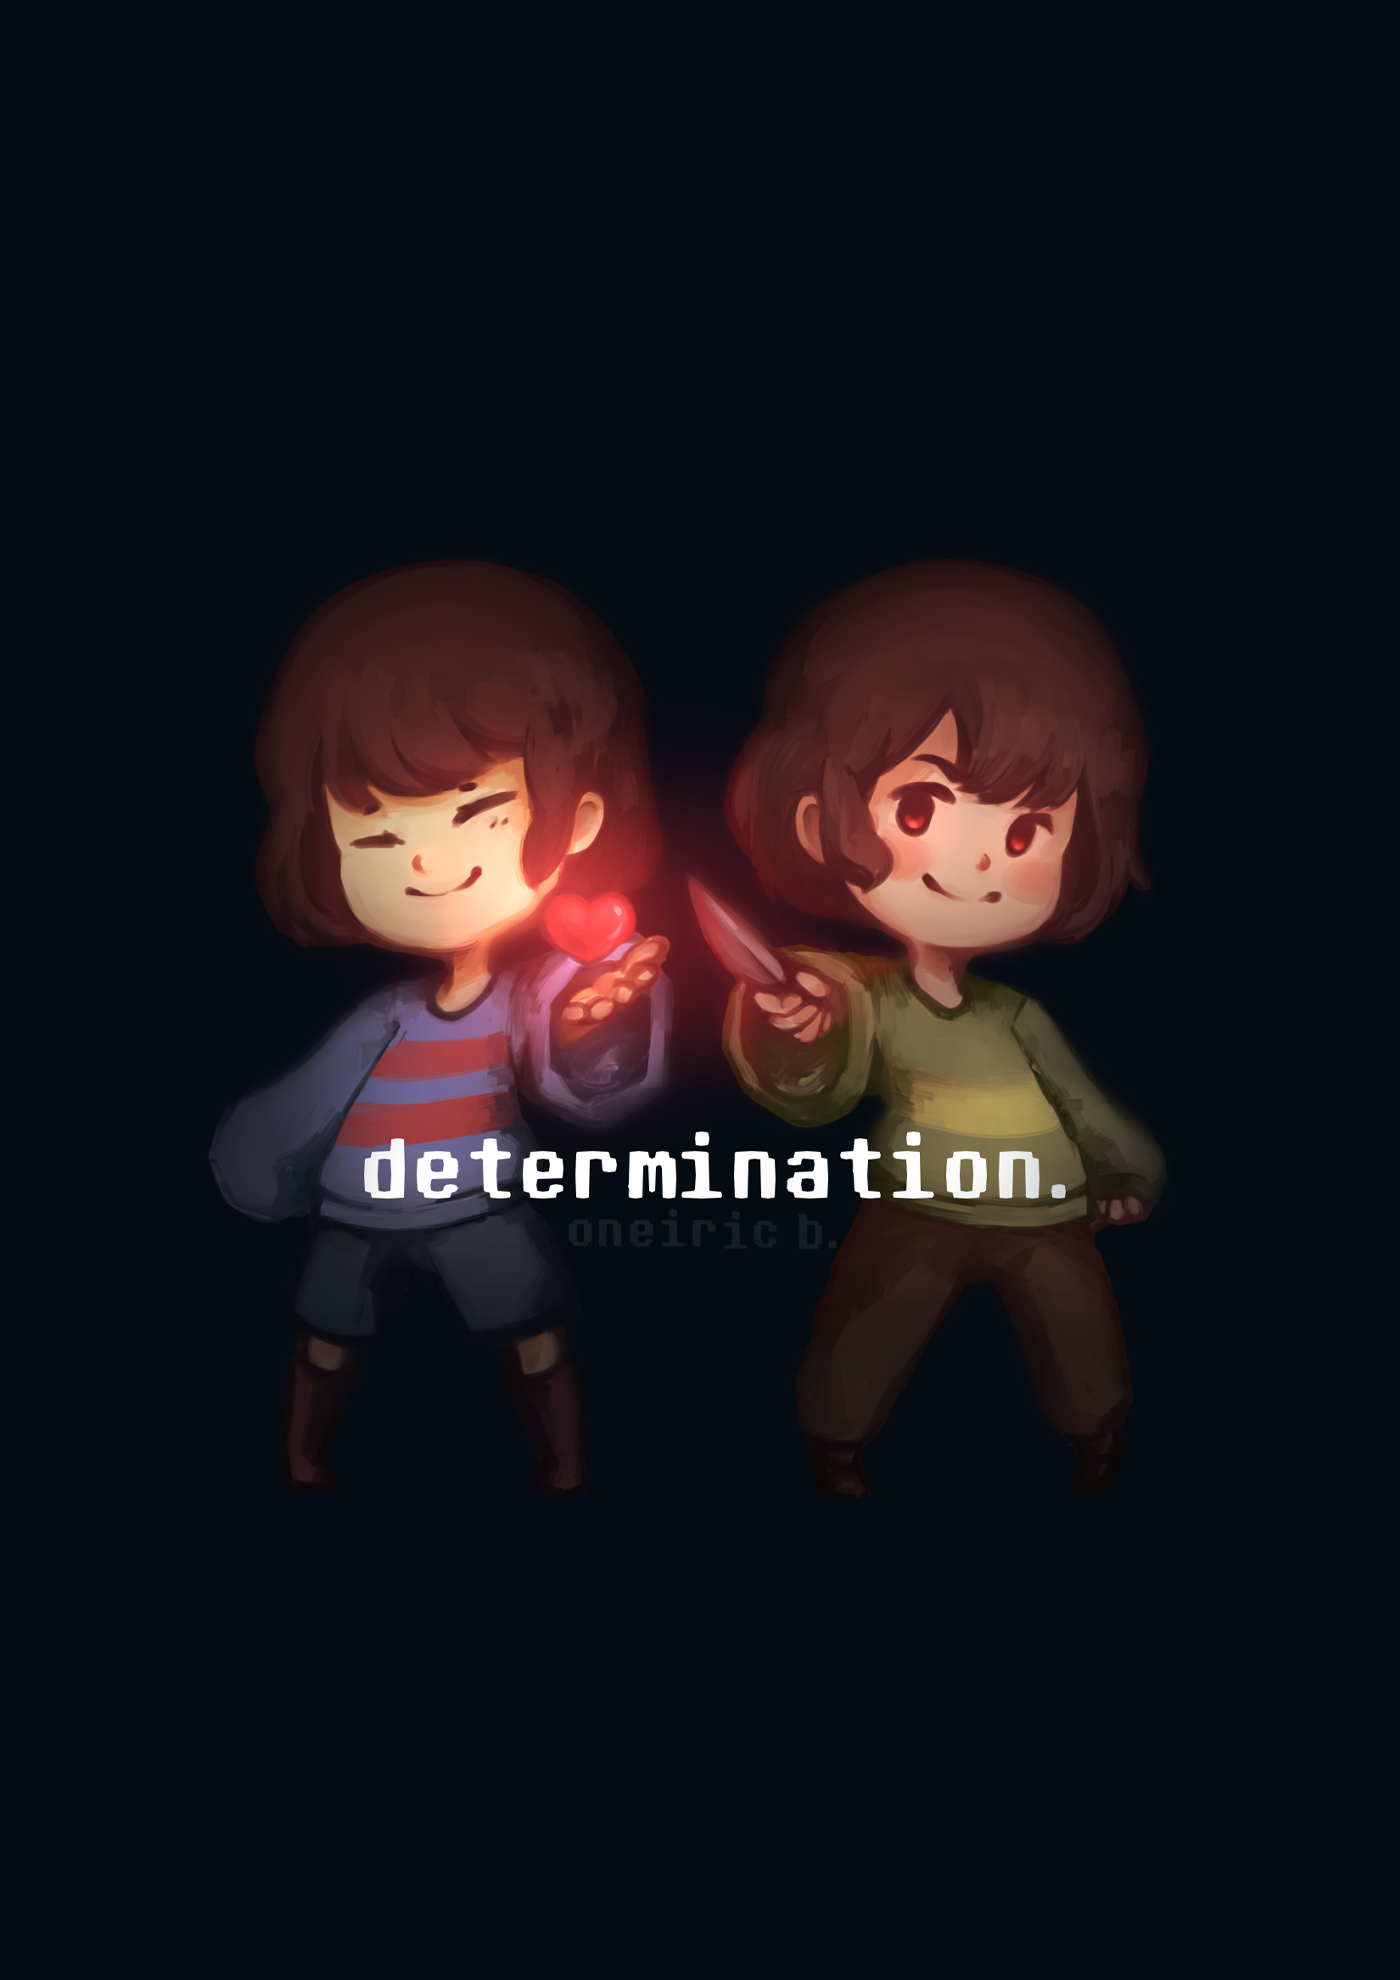 Undertale: Determination (A5 Print) from OneiricBlue